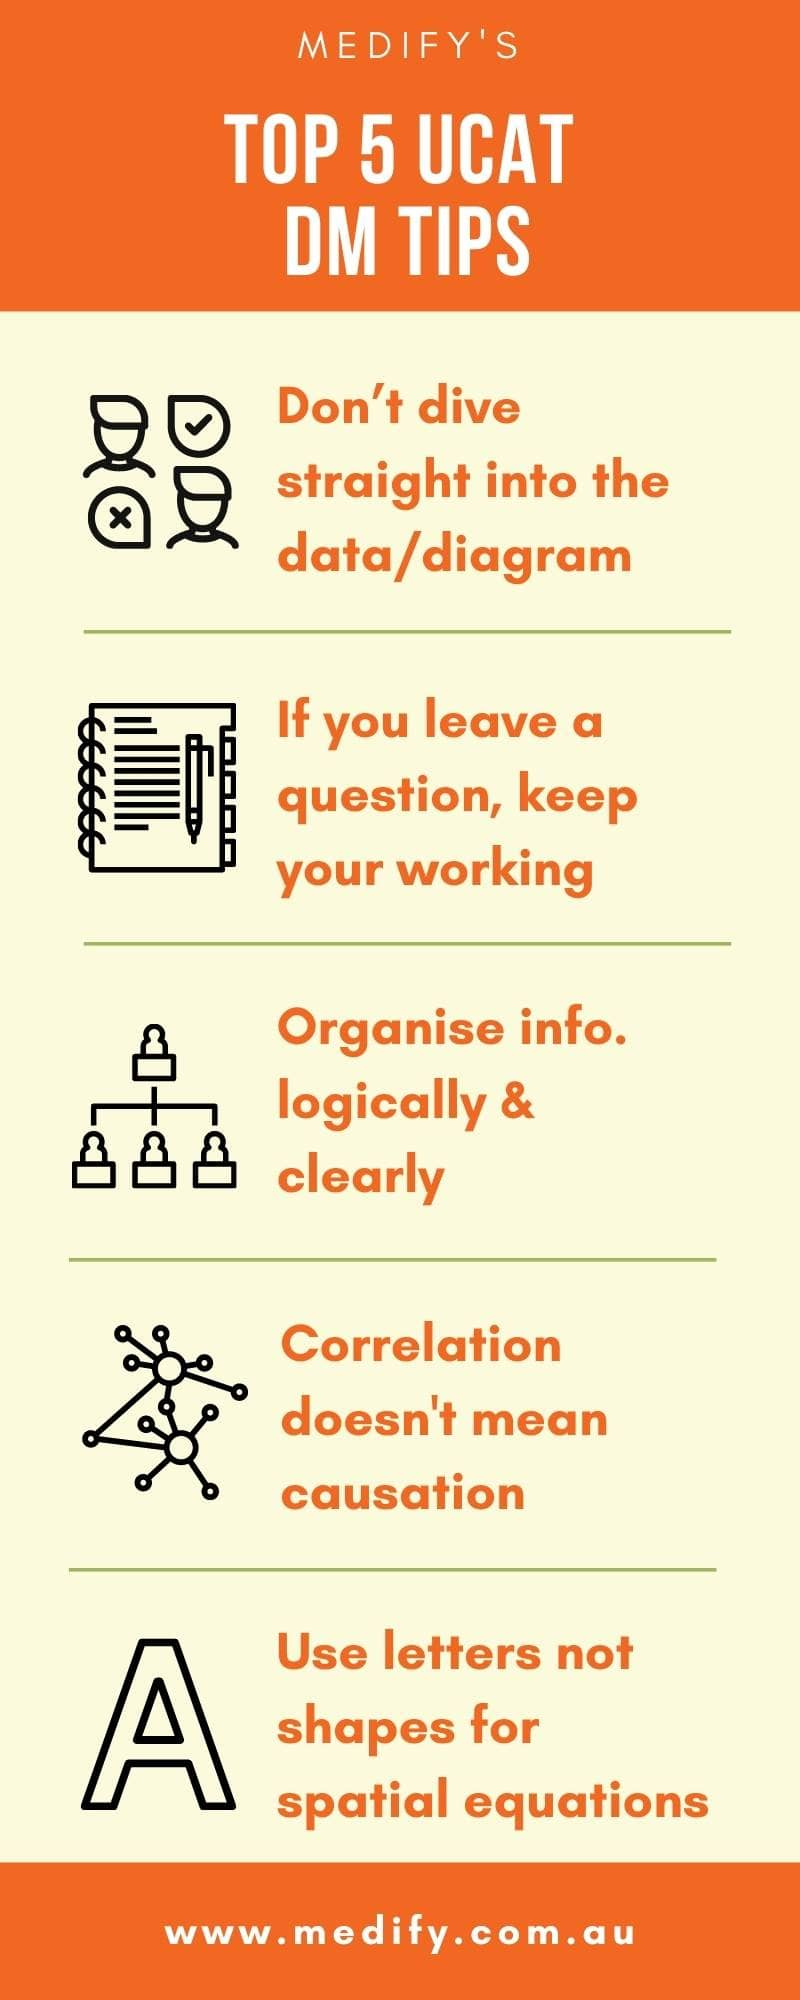 Medify's Tops UCAT Decision Making Tips infographic